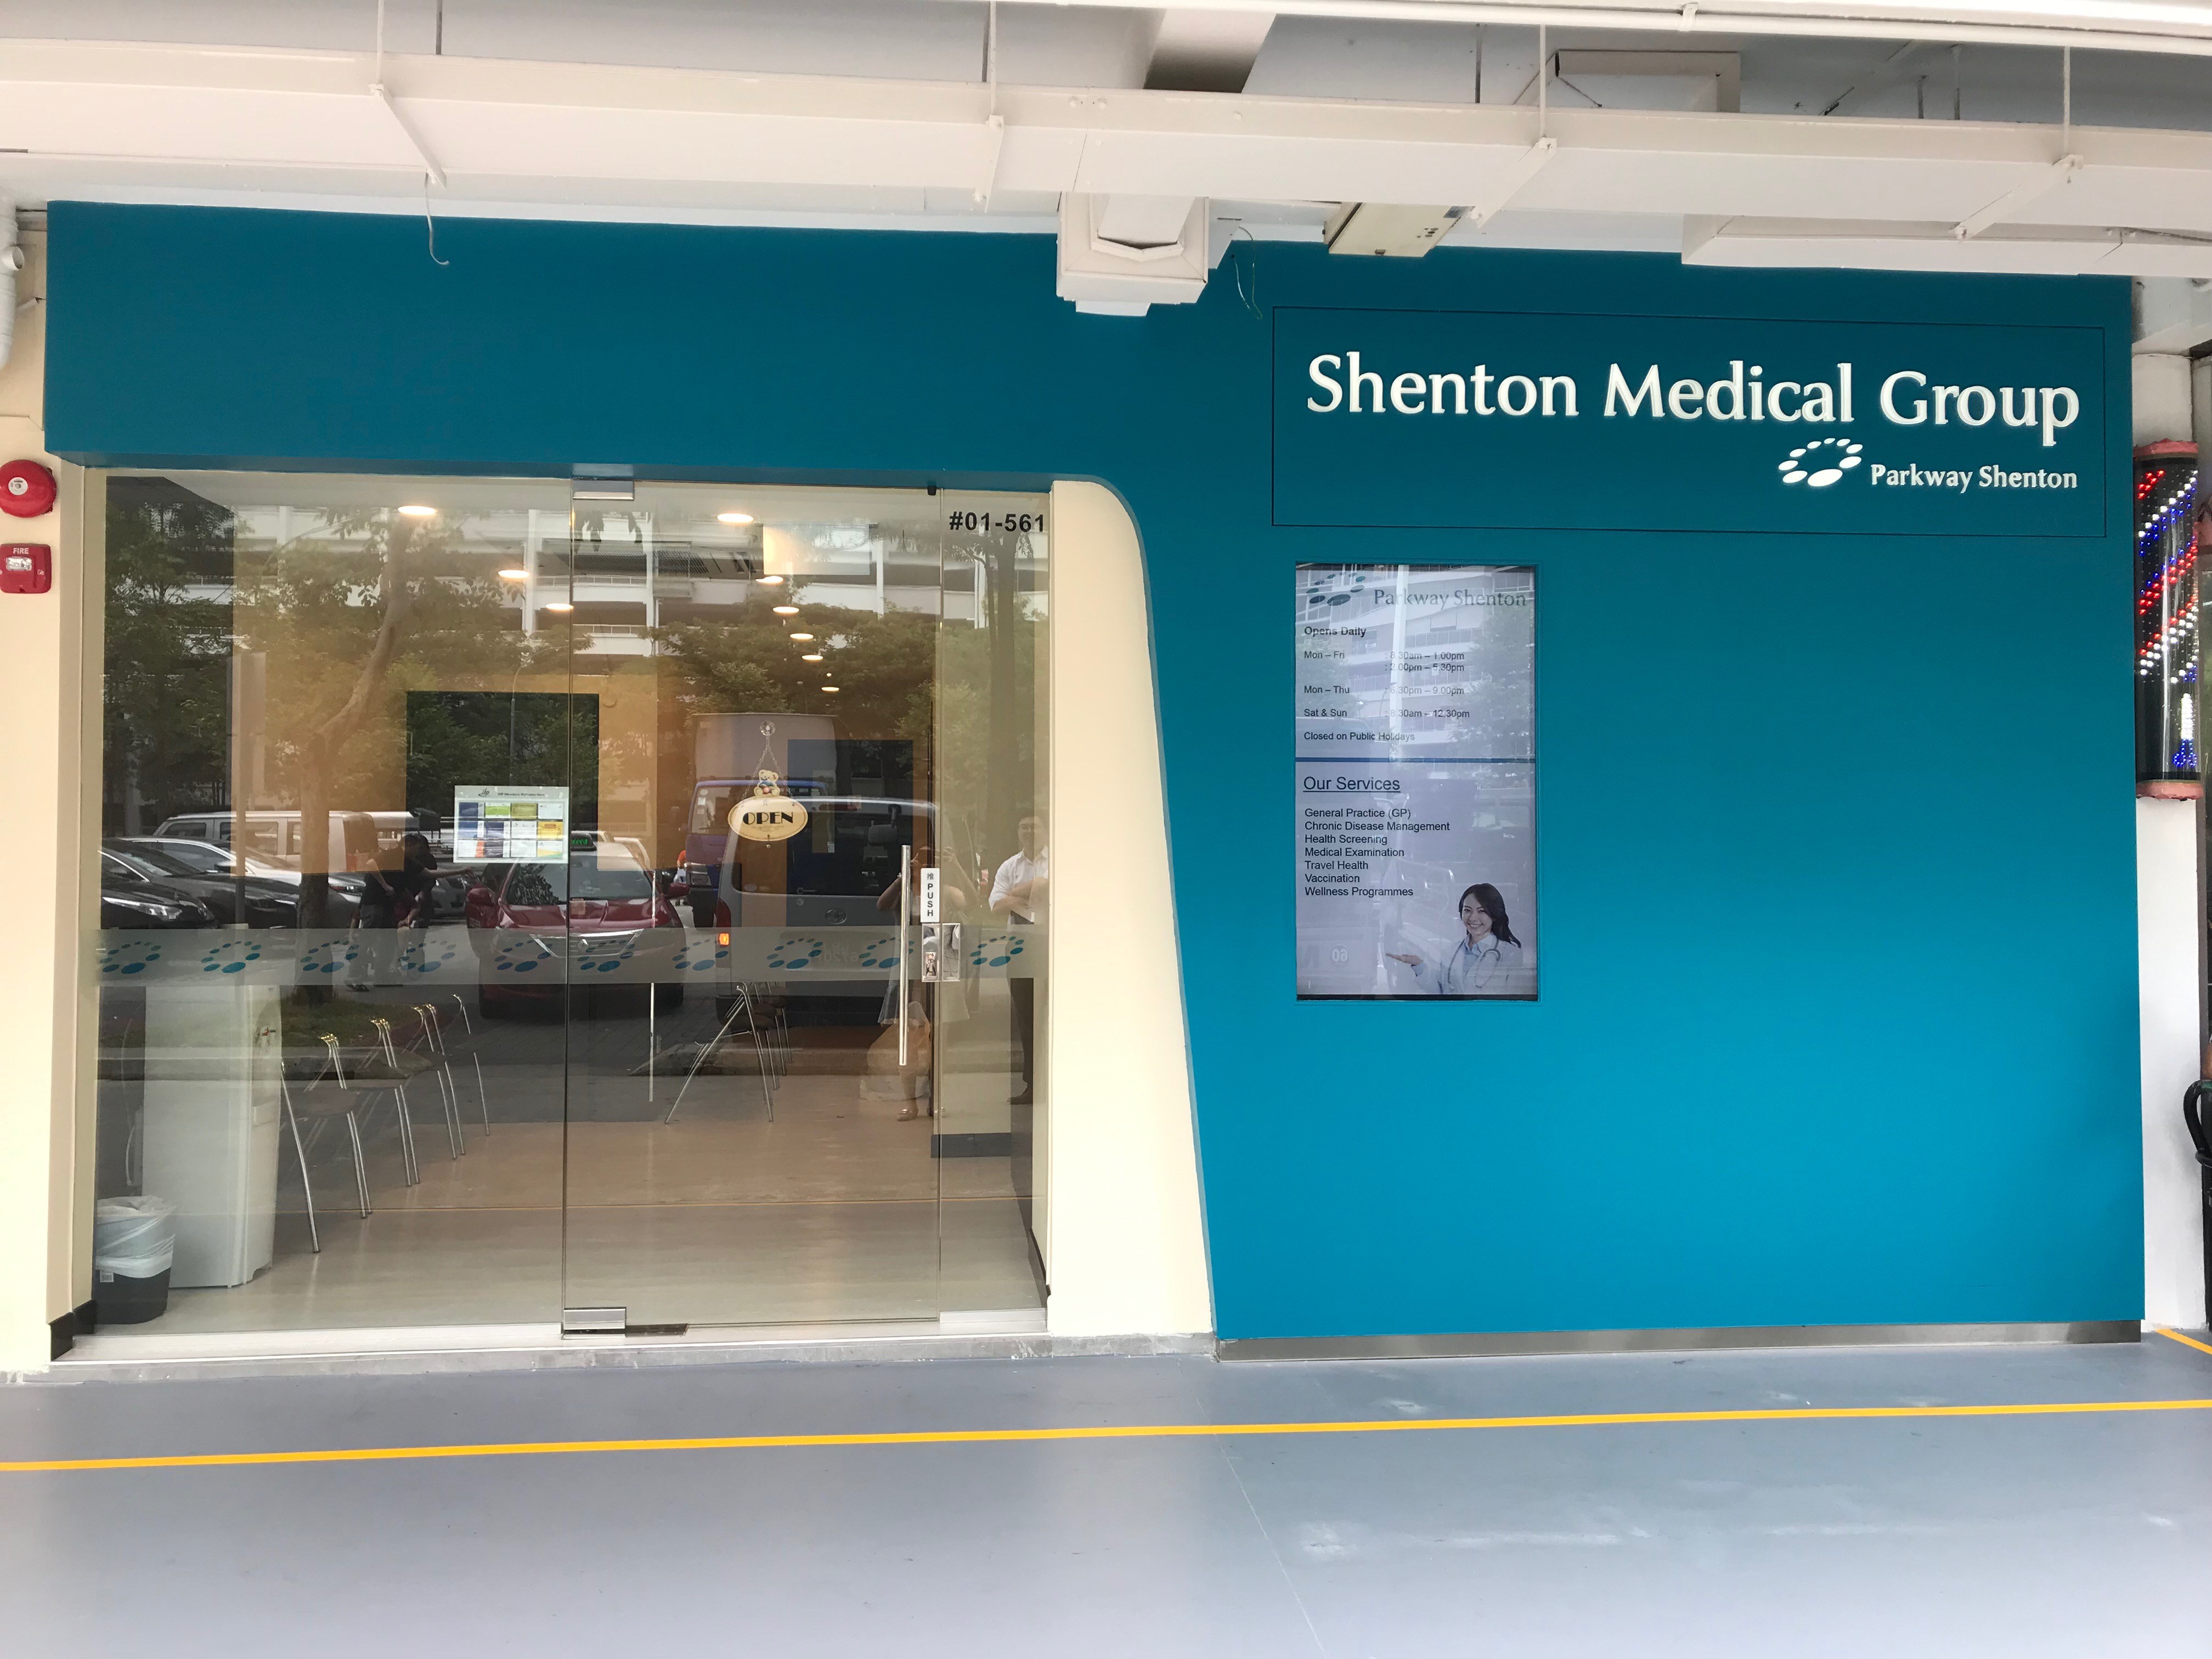 Toa Payoh - Shenton Medical Group